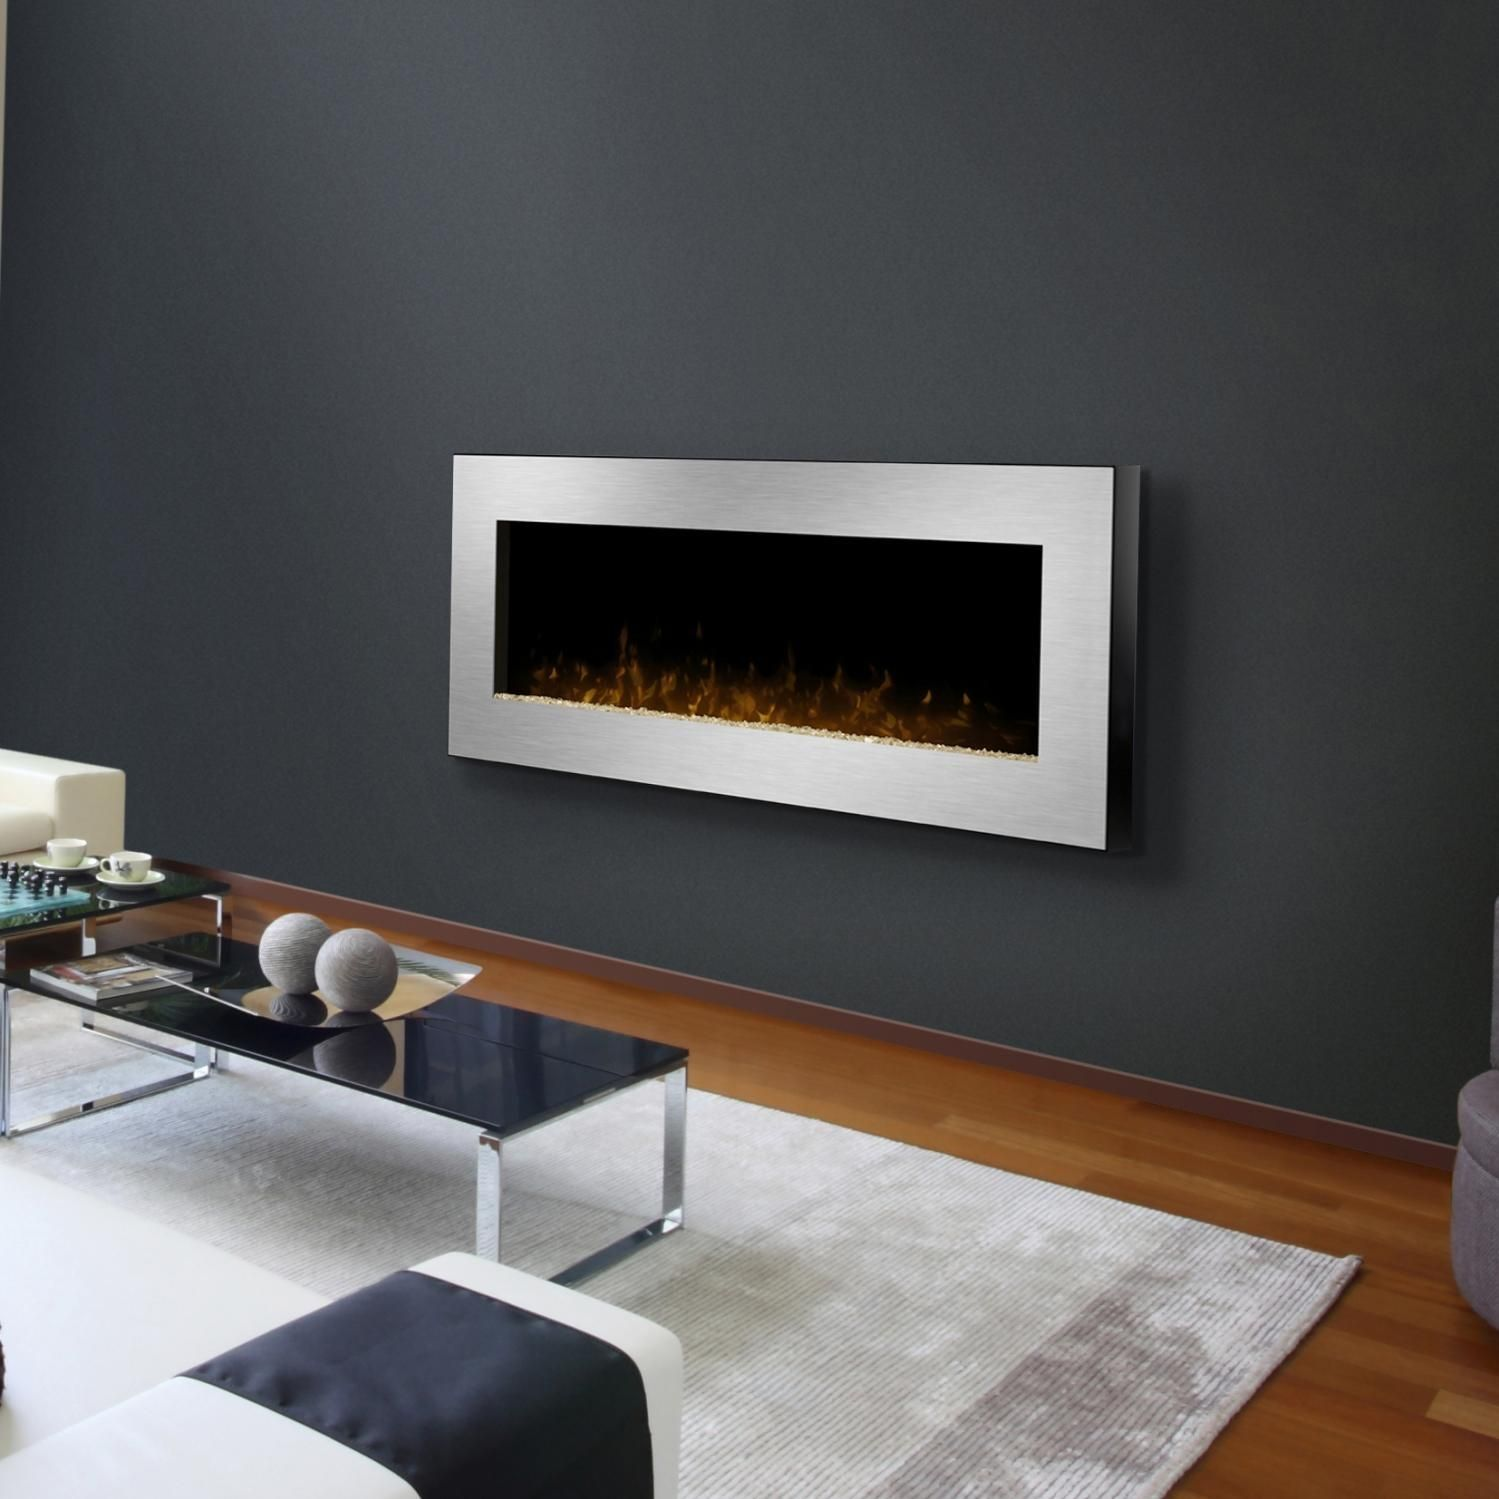 wallmount efca in accessories fireplaces wall electric dimplex linear synergy mounted built fireplace products ca